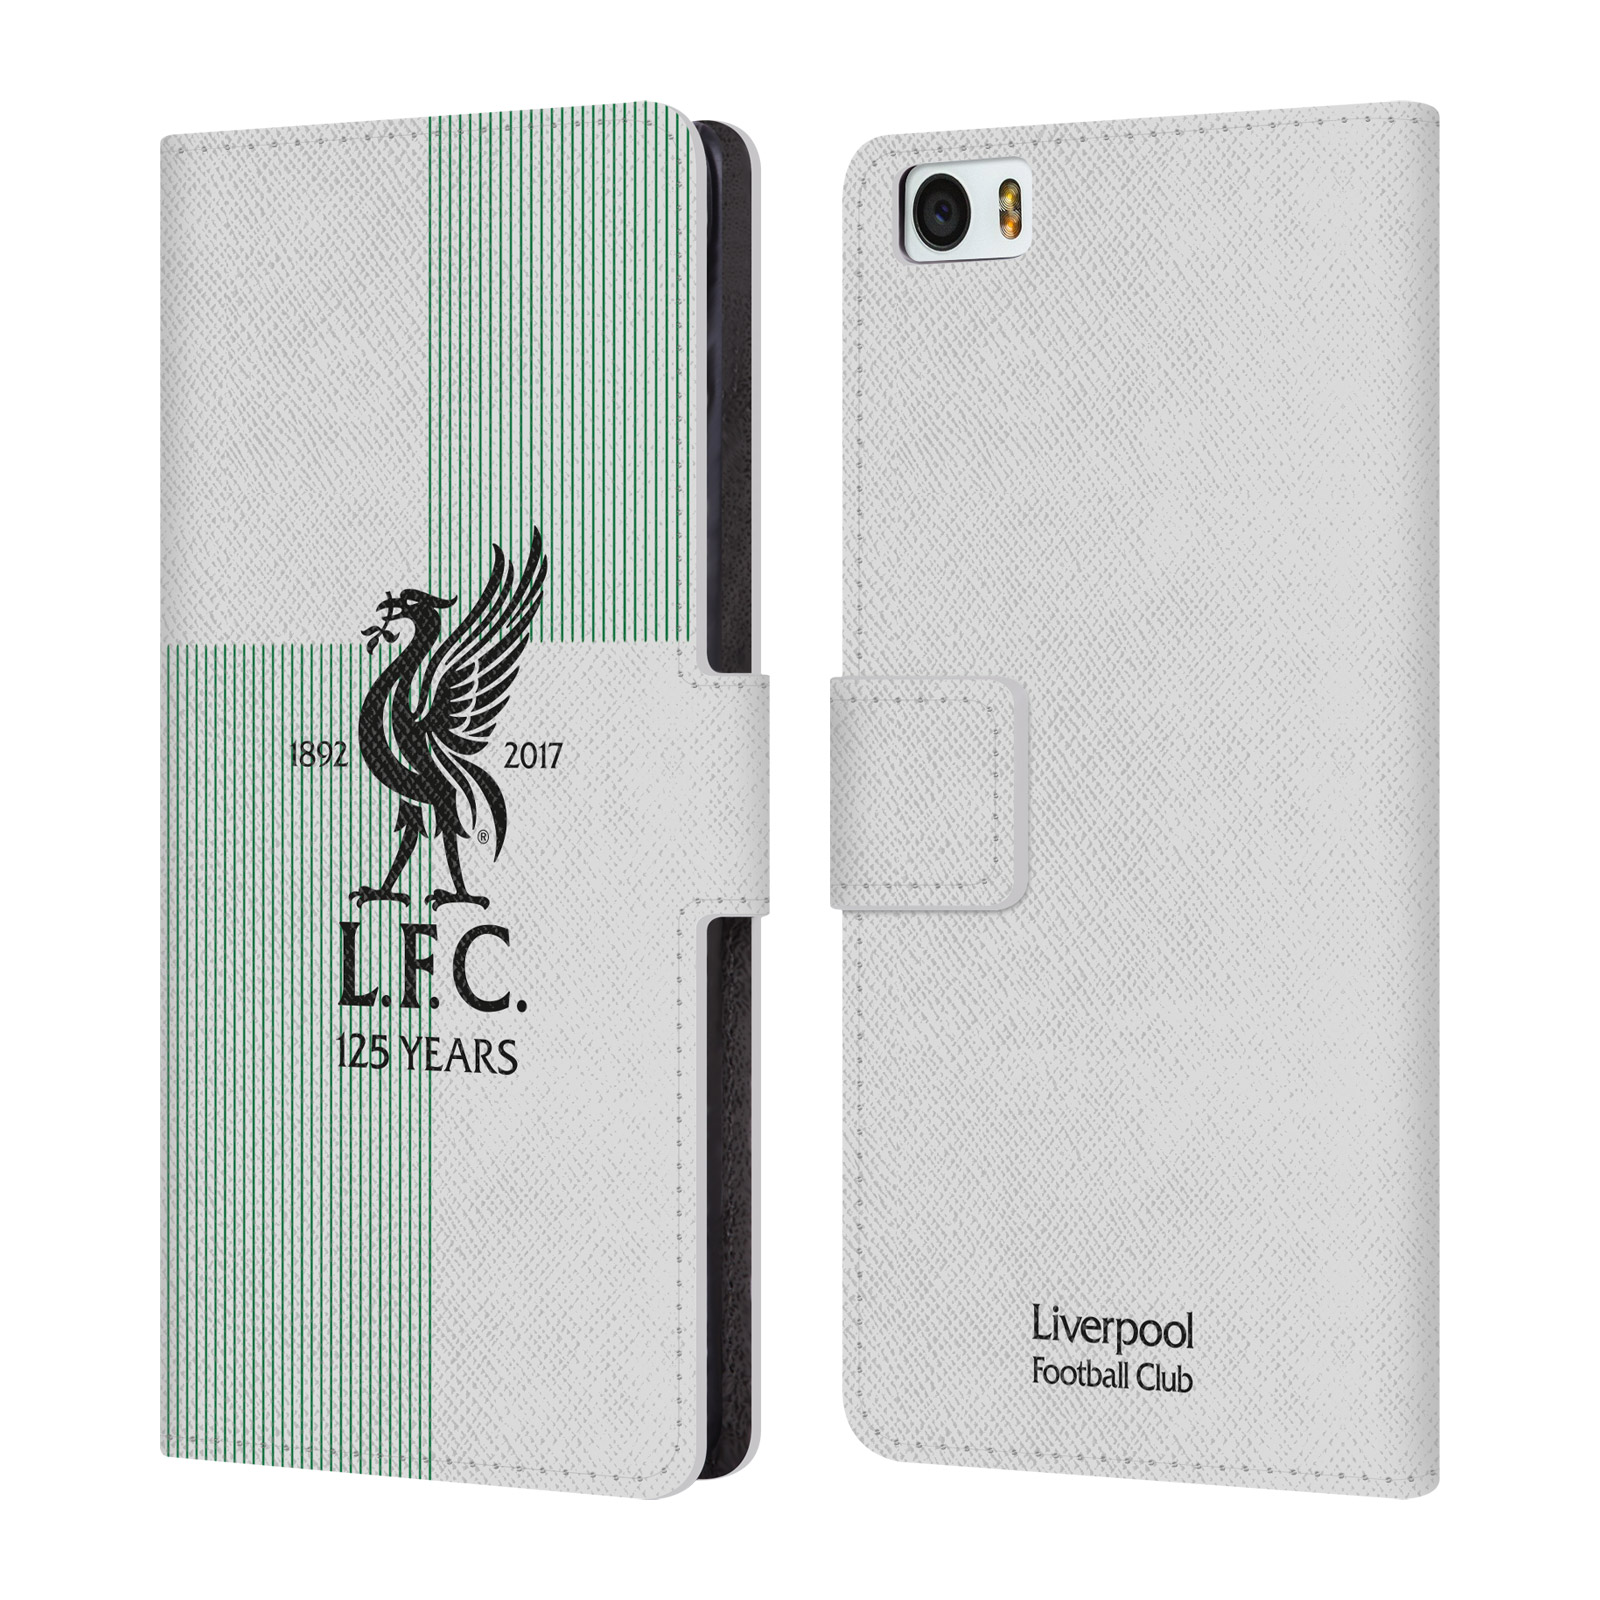 OFFICIAL-LIVERPOOL-FOOTBALL-CLUB-KIT-2017-18-LEATHER-BOOK-CASE-FOR-XIAOMI-PHONES